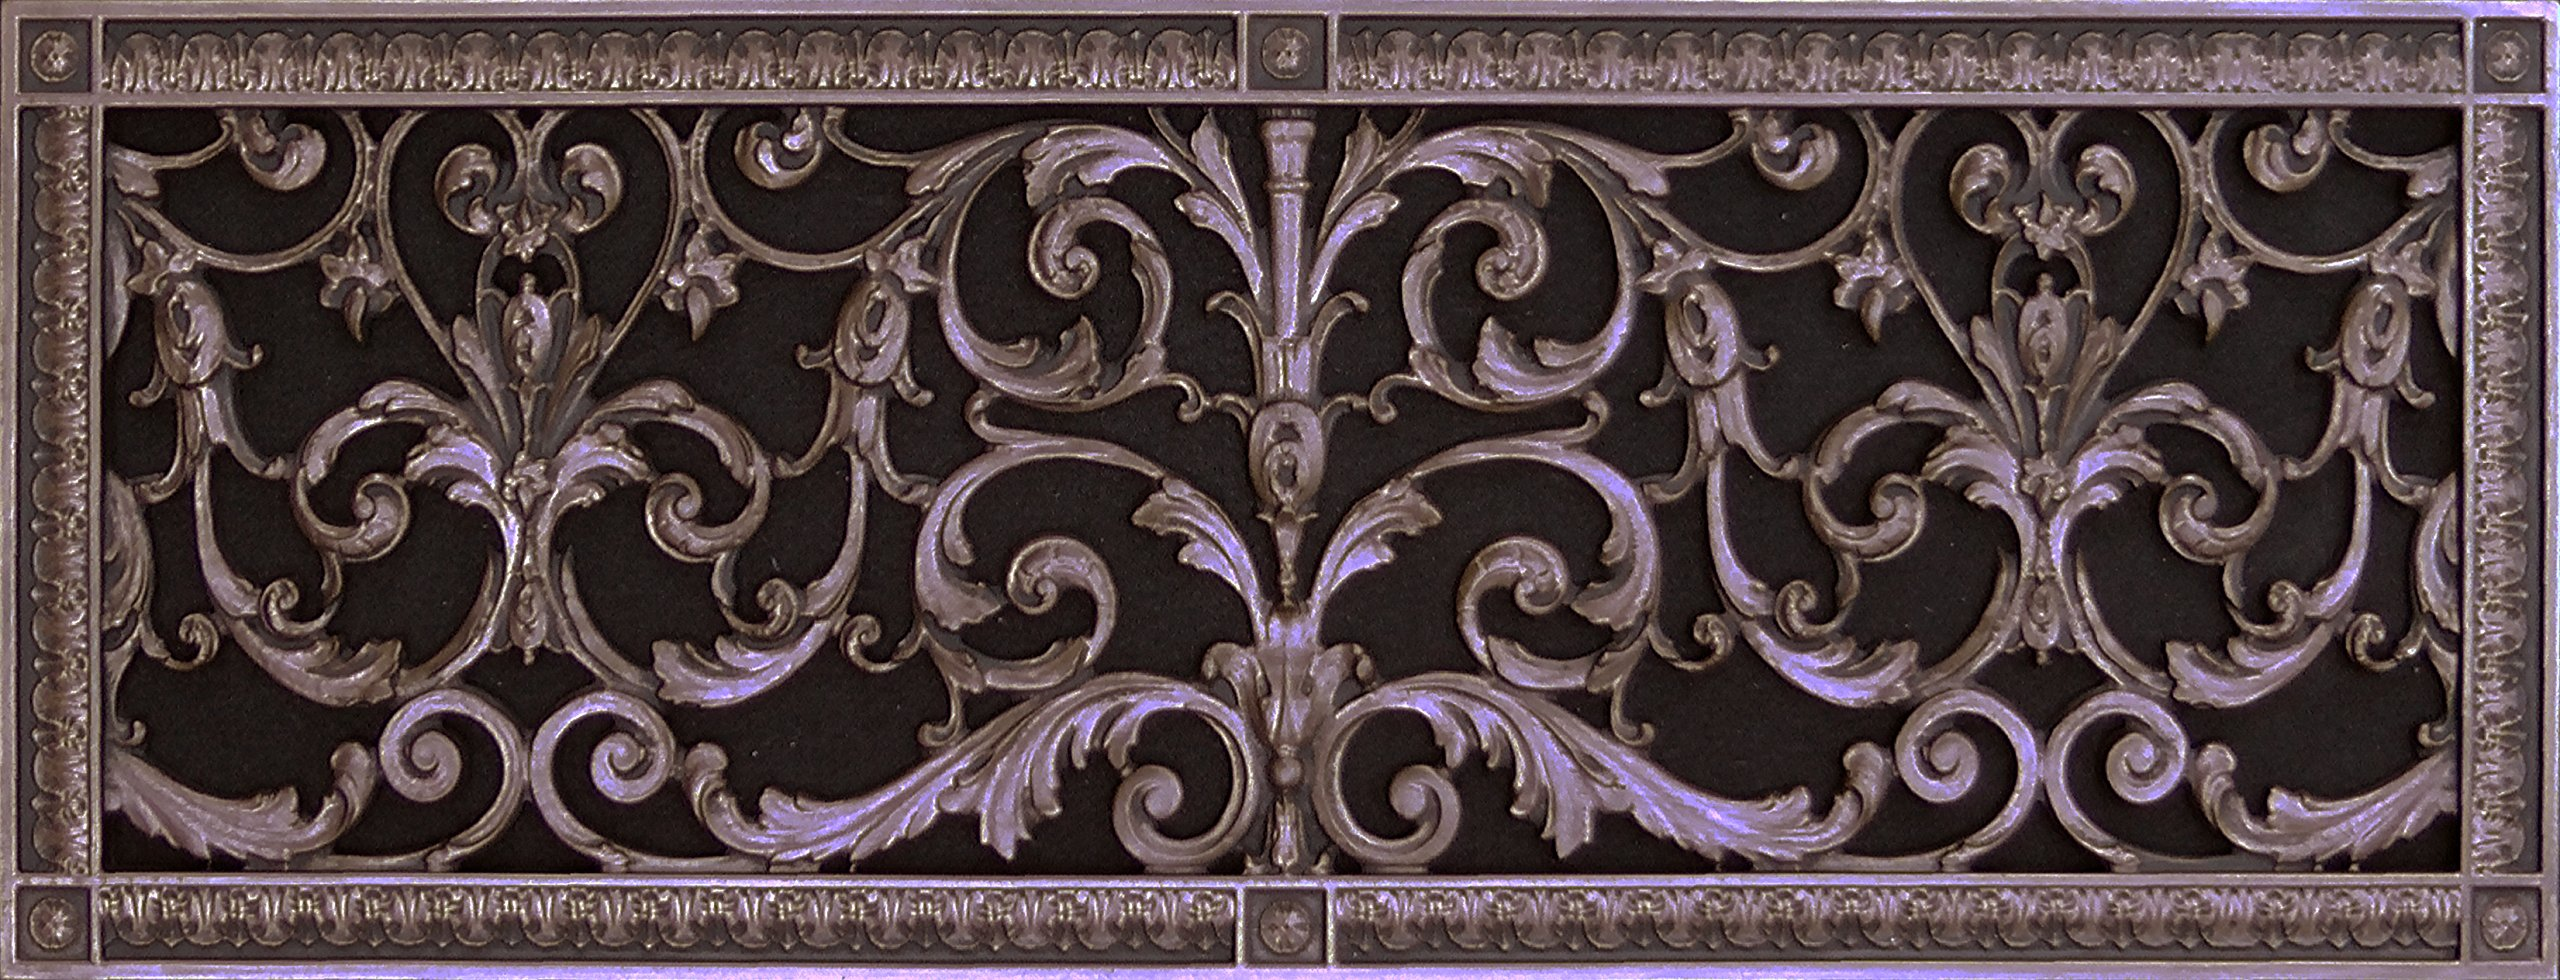 "Decorative Vent Cover, Grille, made of Urethane Resin in Louis XIV, French style fits over a 10""x 30"", Total size, 12"" by 32"", for wall & ceiling installation only. (not for floors) (Rubbed Bronze) by Beaux-Artes, Ltd."